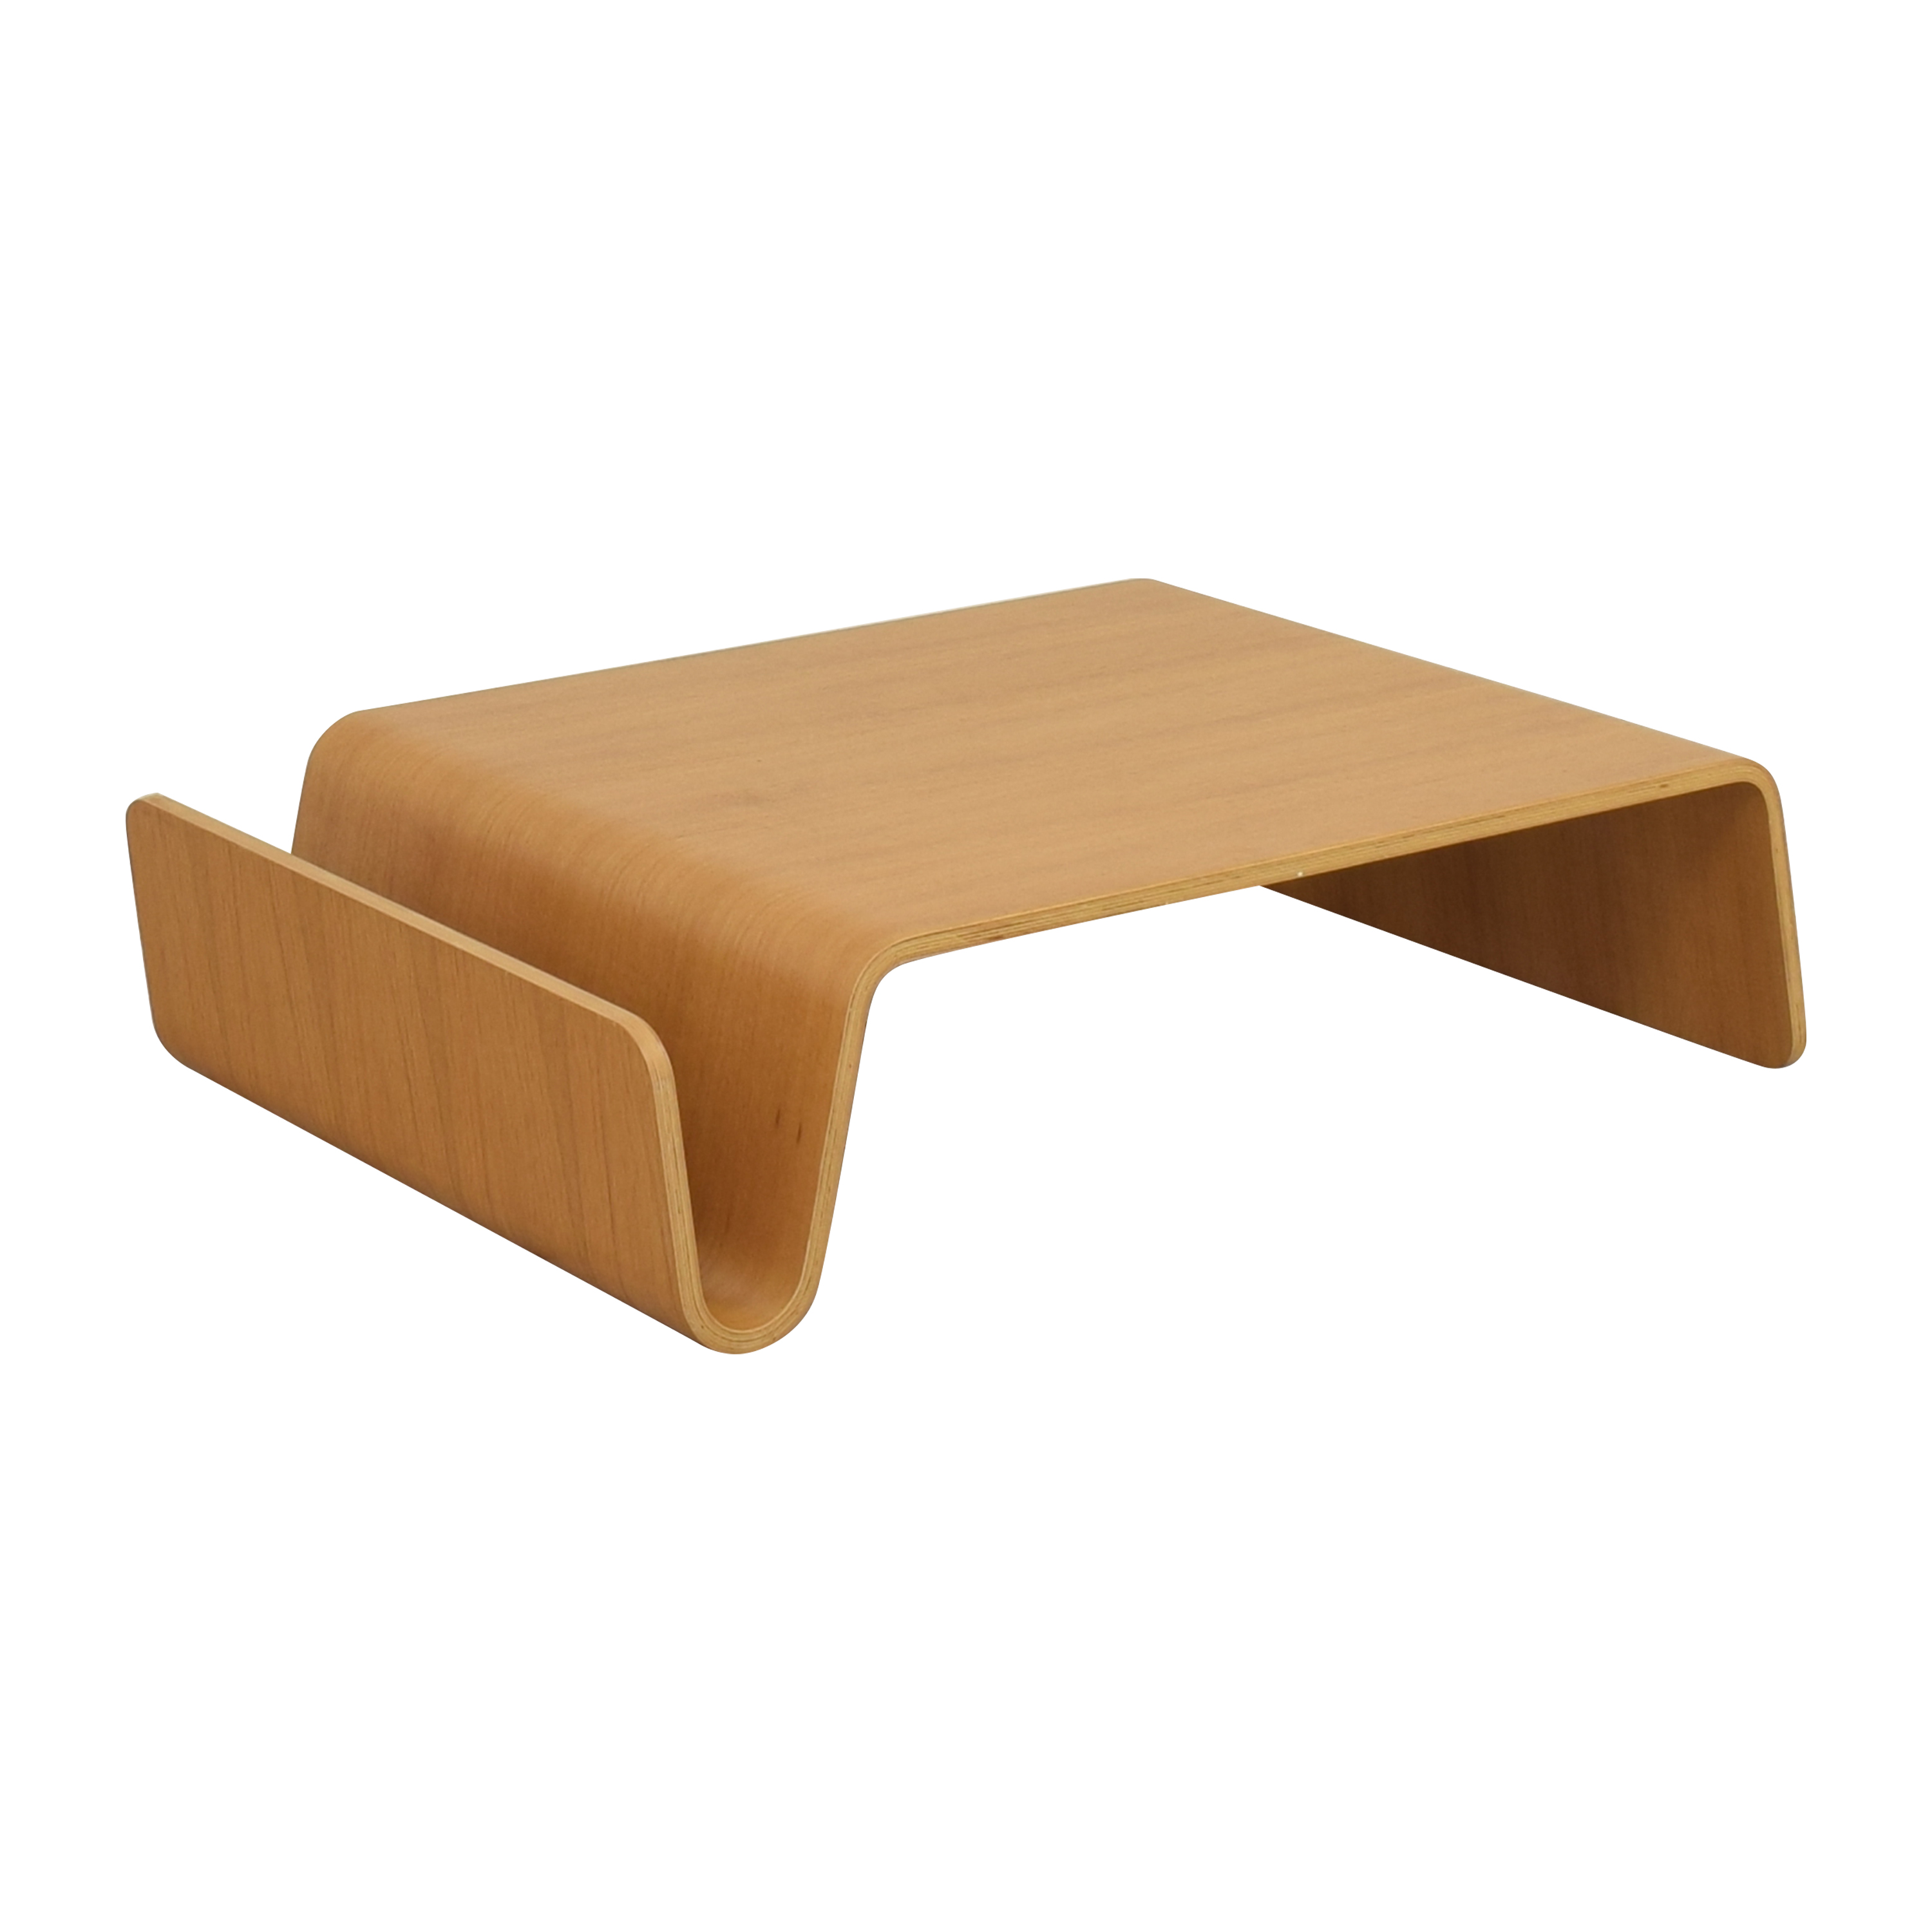 Offi Offi Scando Molded Plywood Coffee Table price